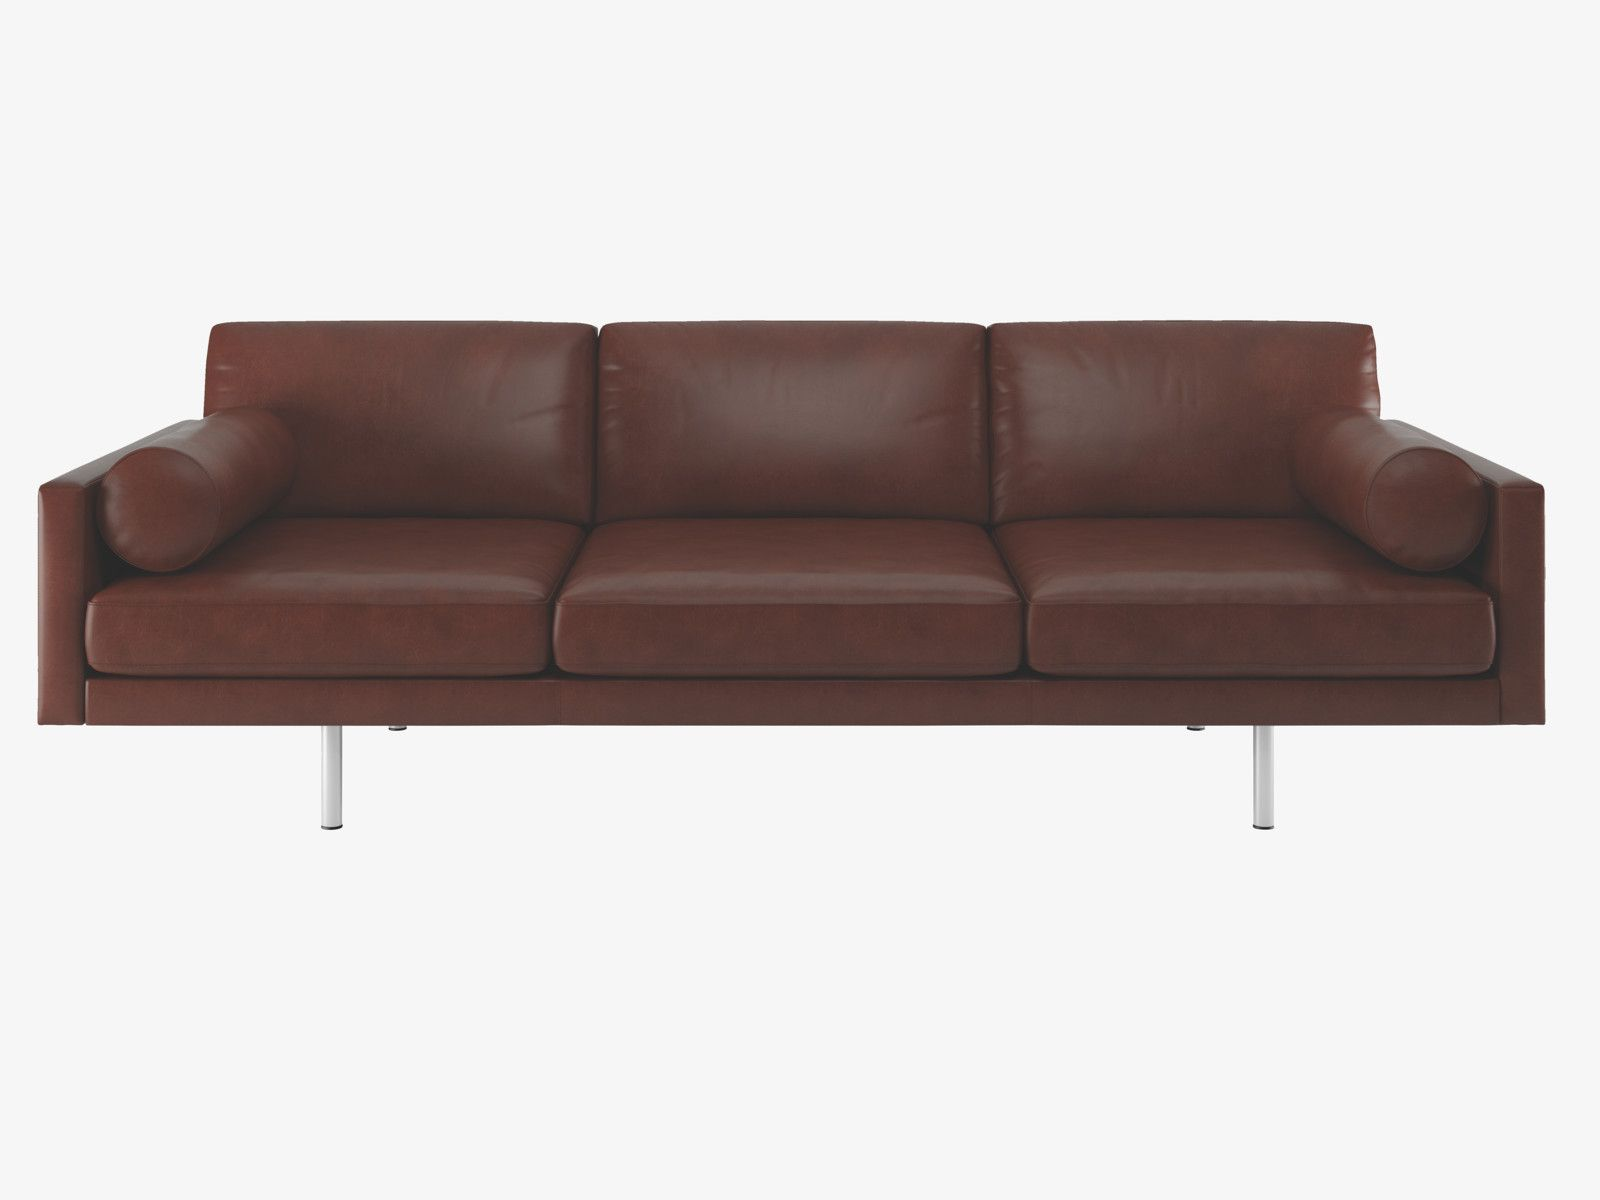 Brown Leather Sofa On Legs Large Chaise Spencer Tan 4 Seater Metal